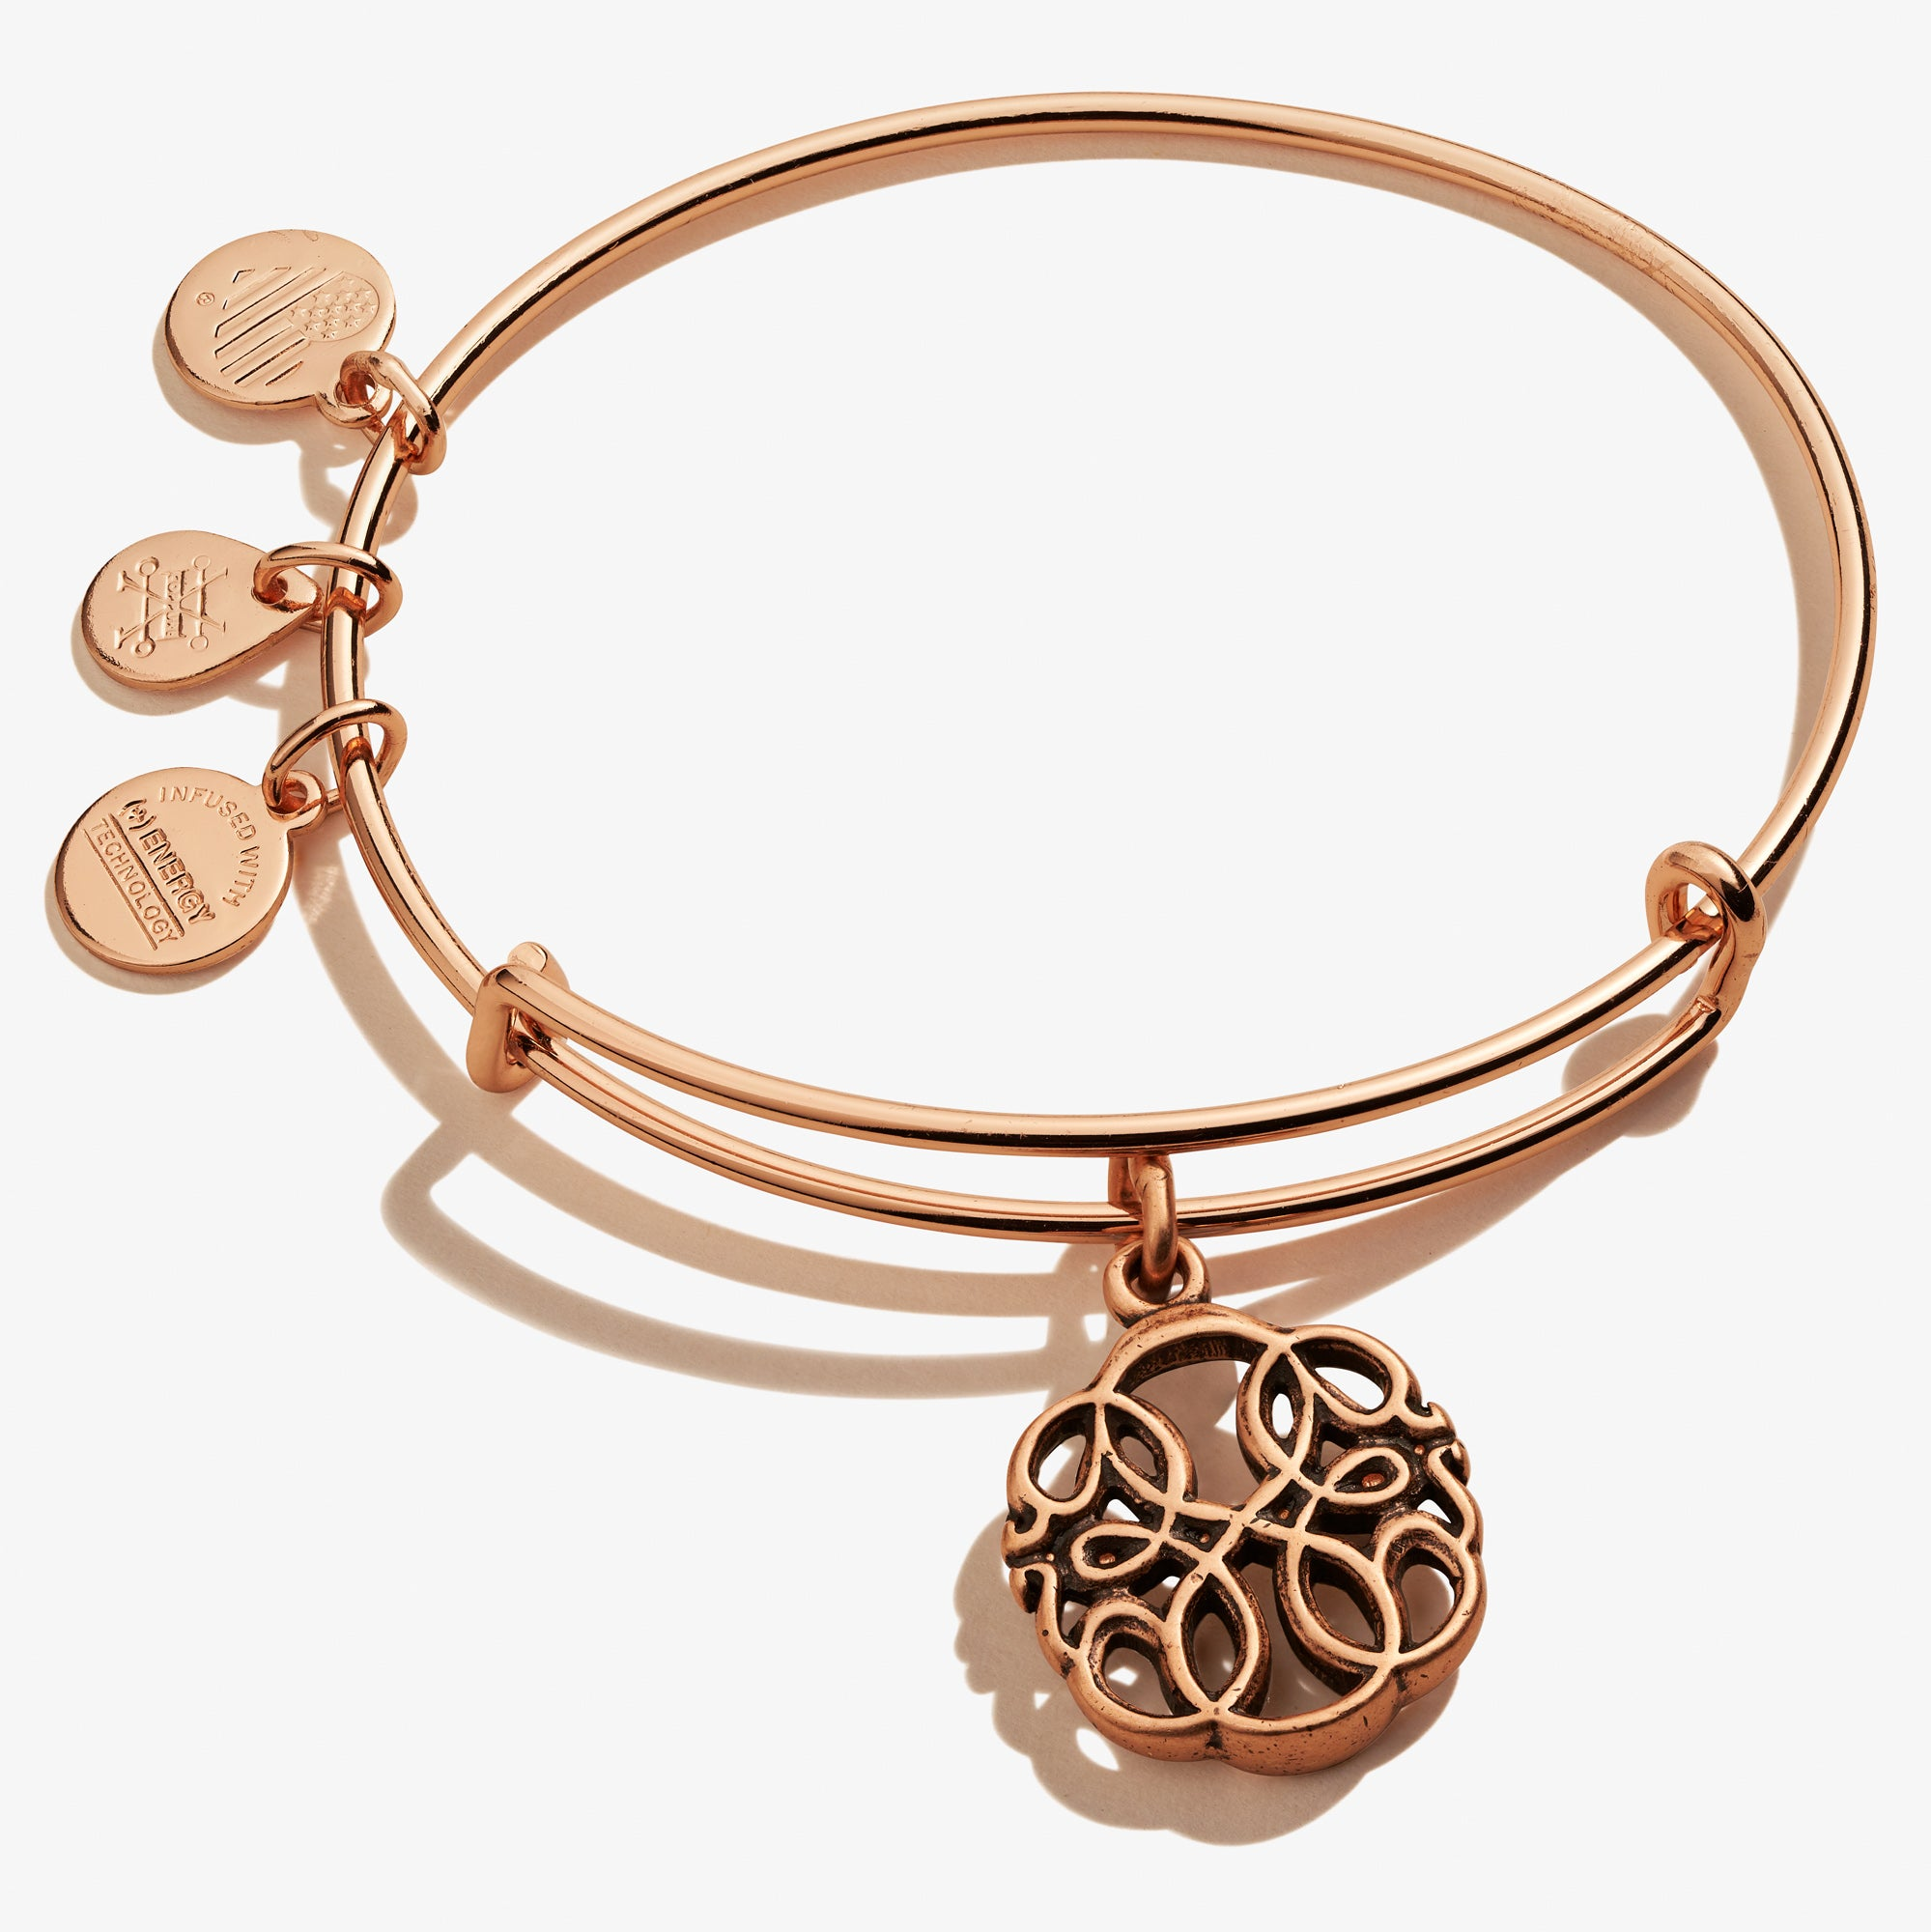 Alex and ani the path of life